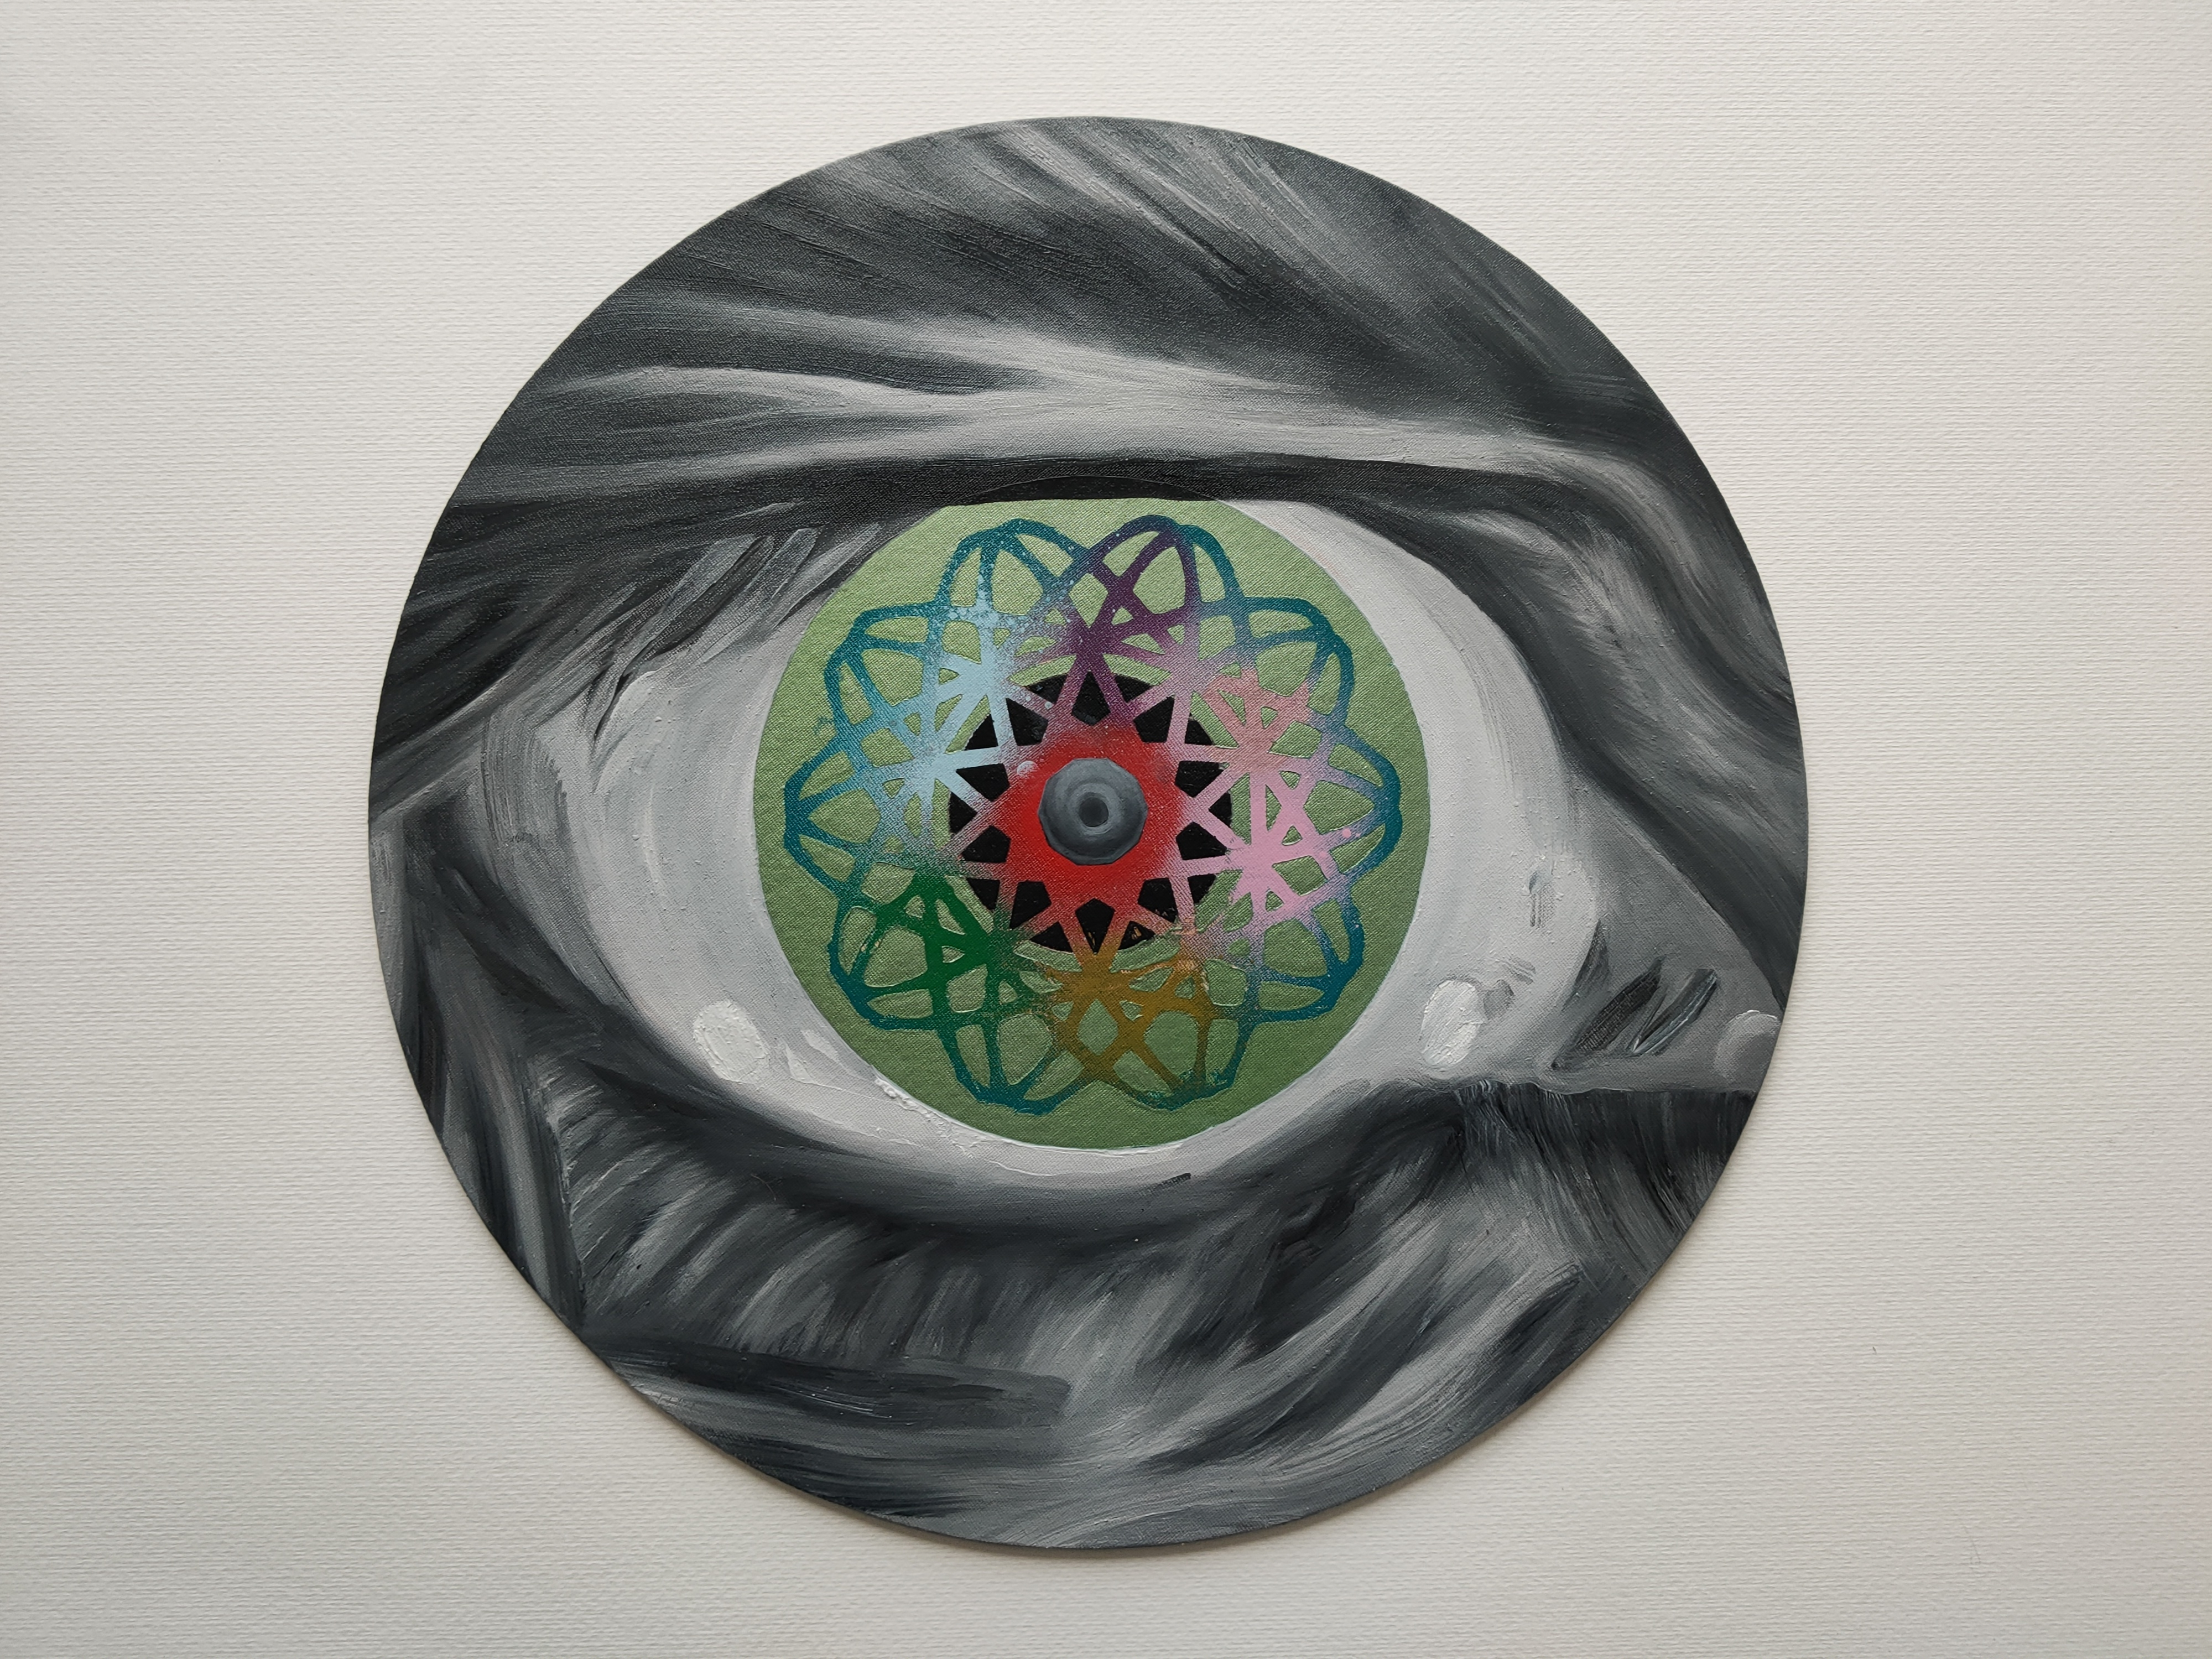 Iris of Why, Marc Molk, 2020, oil and acrylic on canvas board, diameter 15,7 in